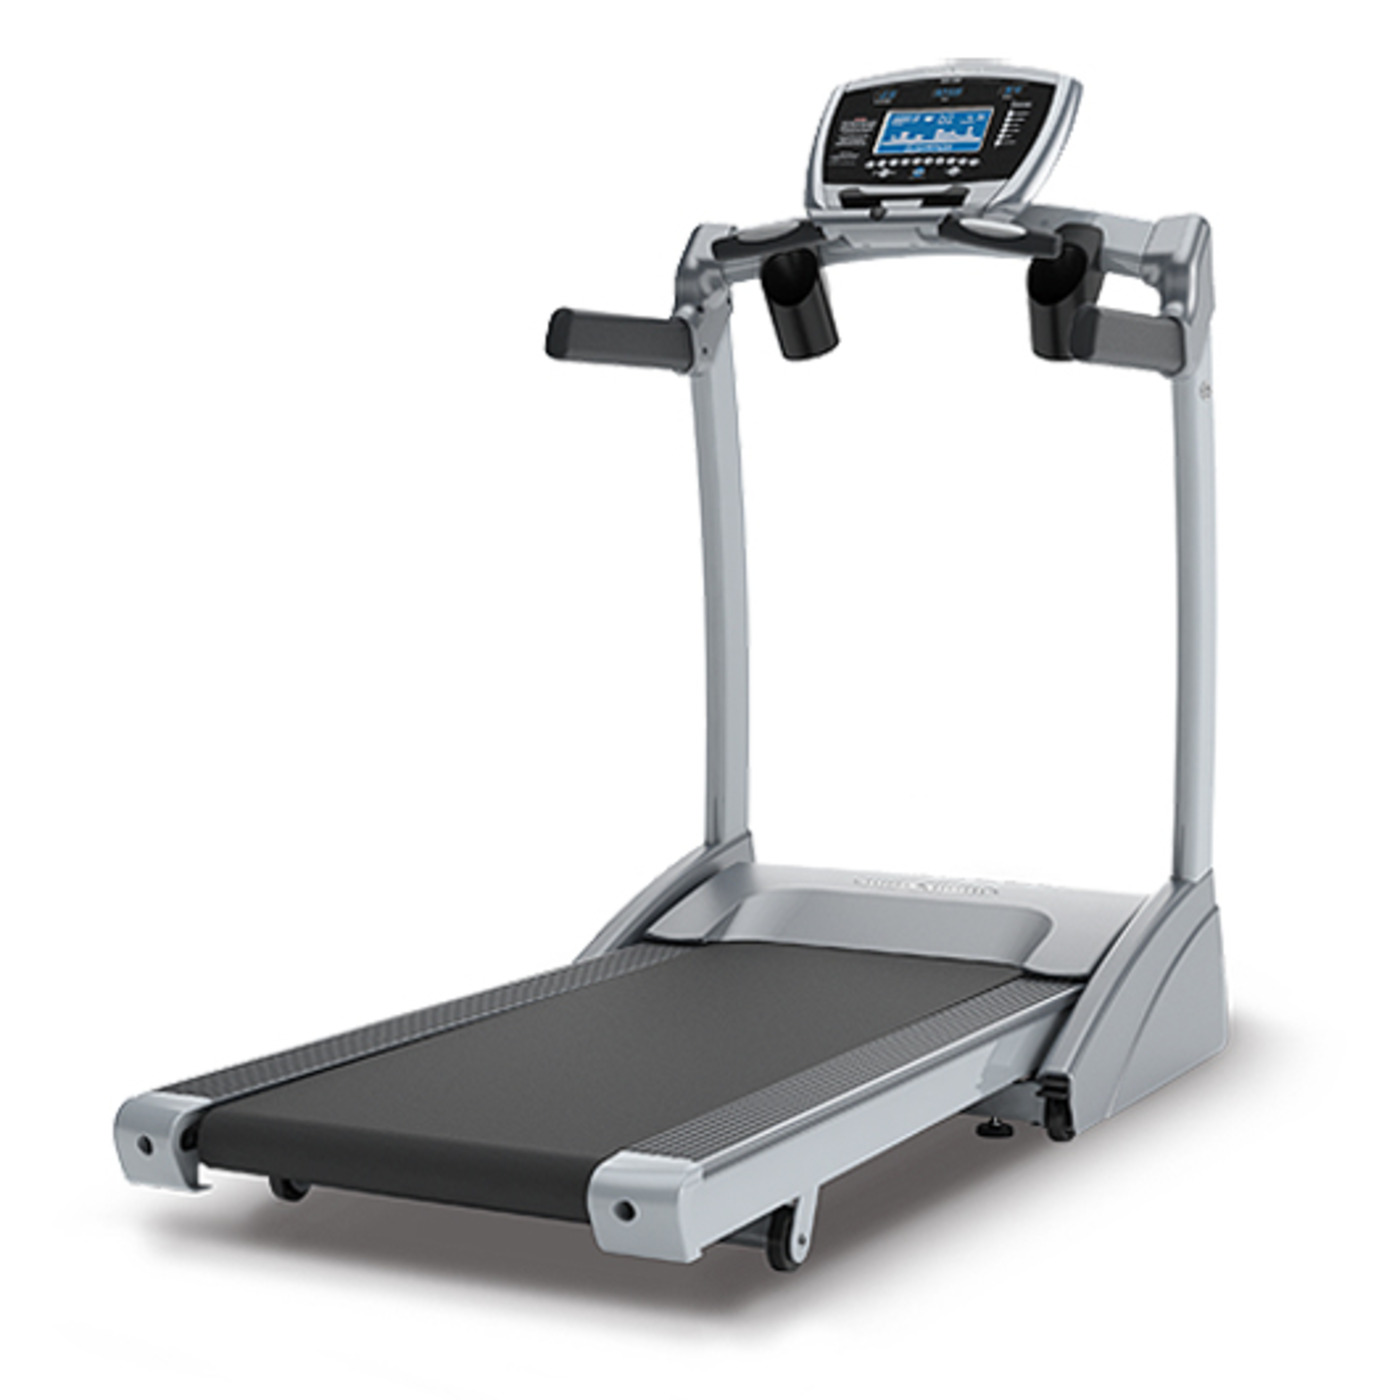 T9550 Treadmill (with New Simple